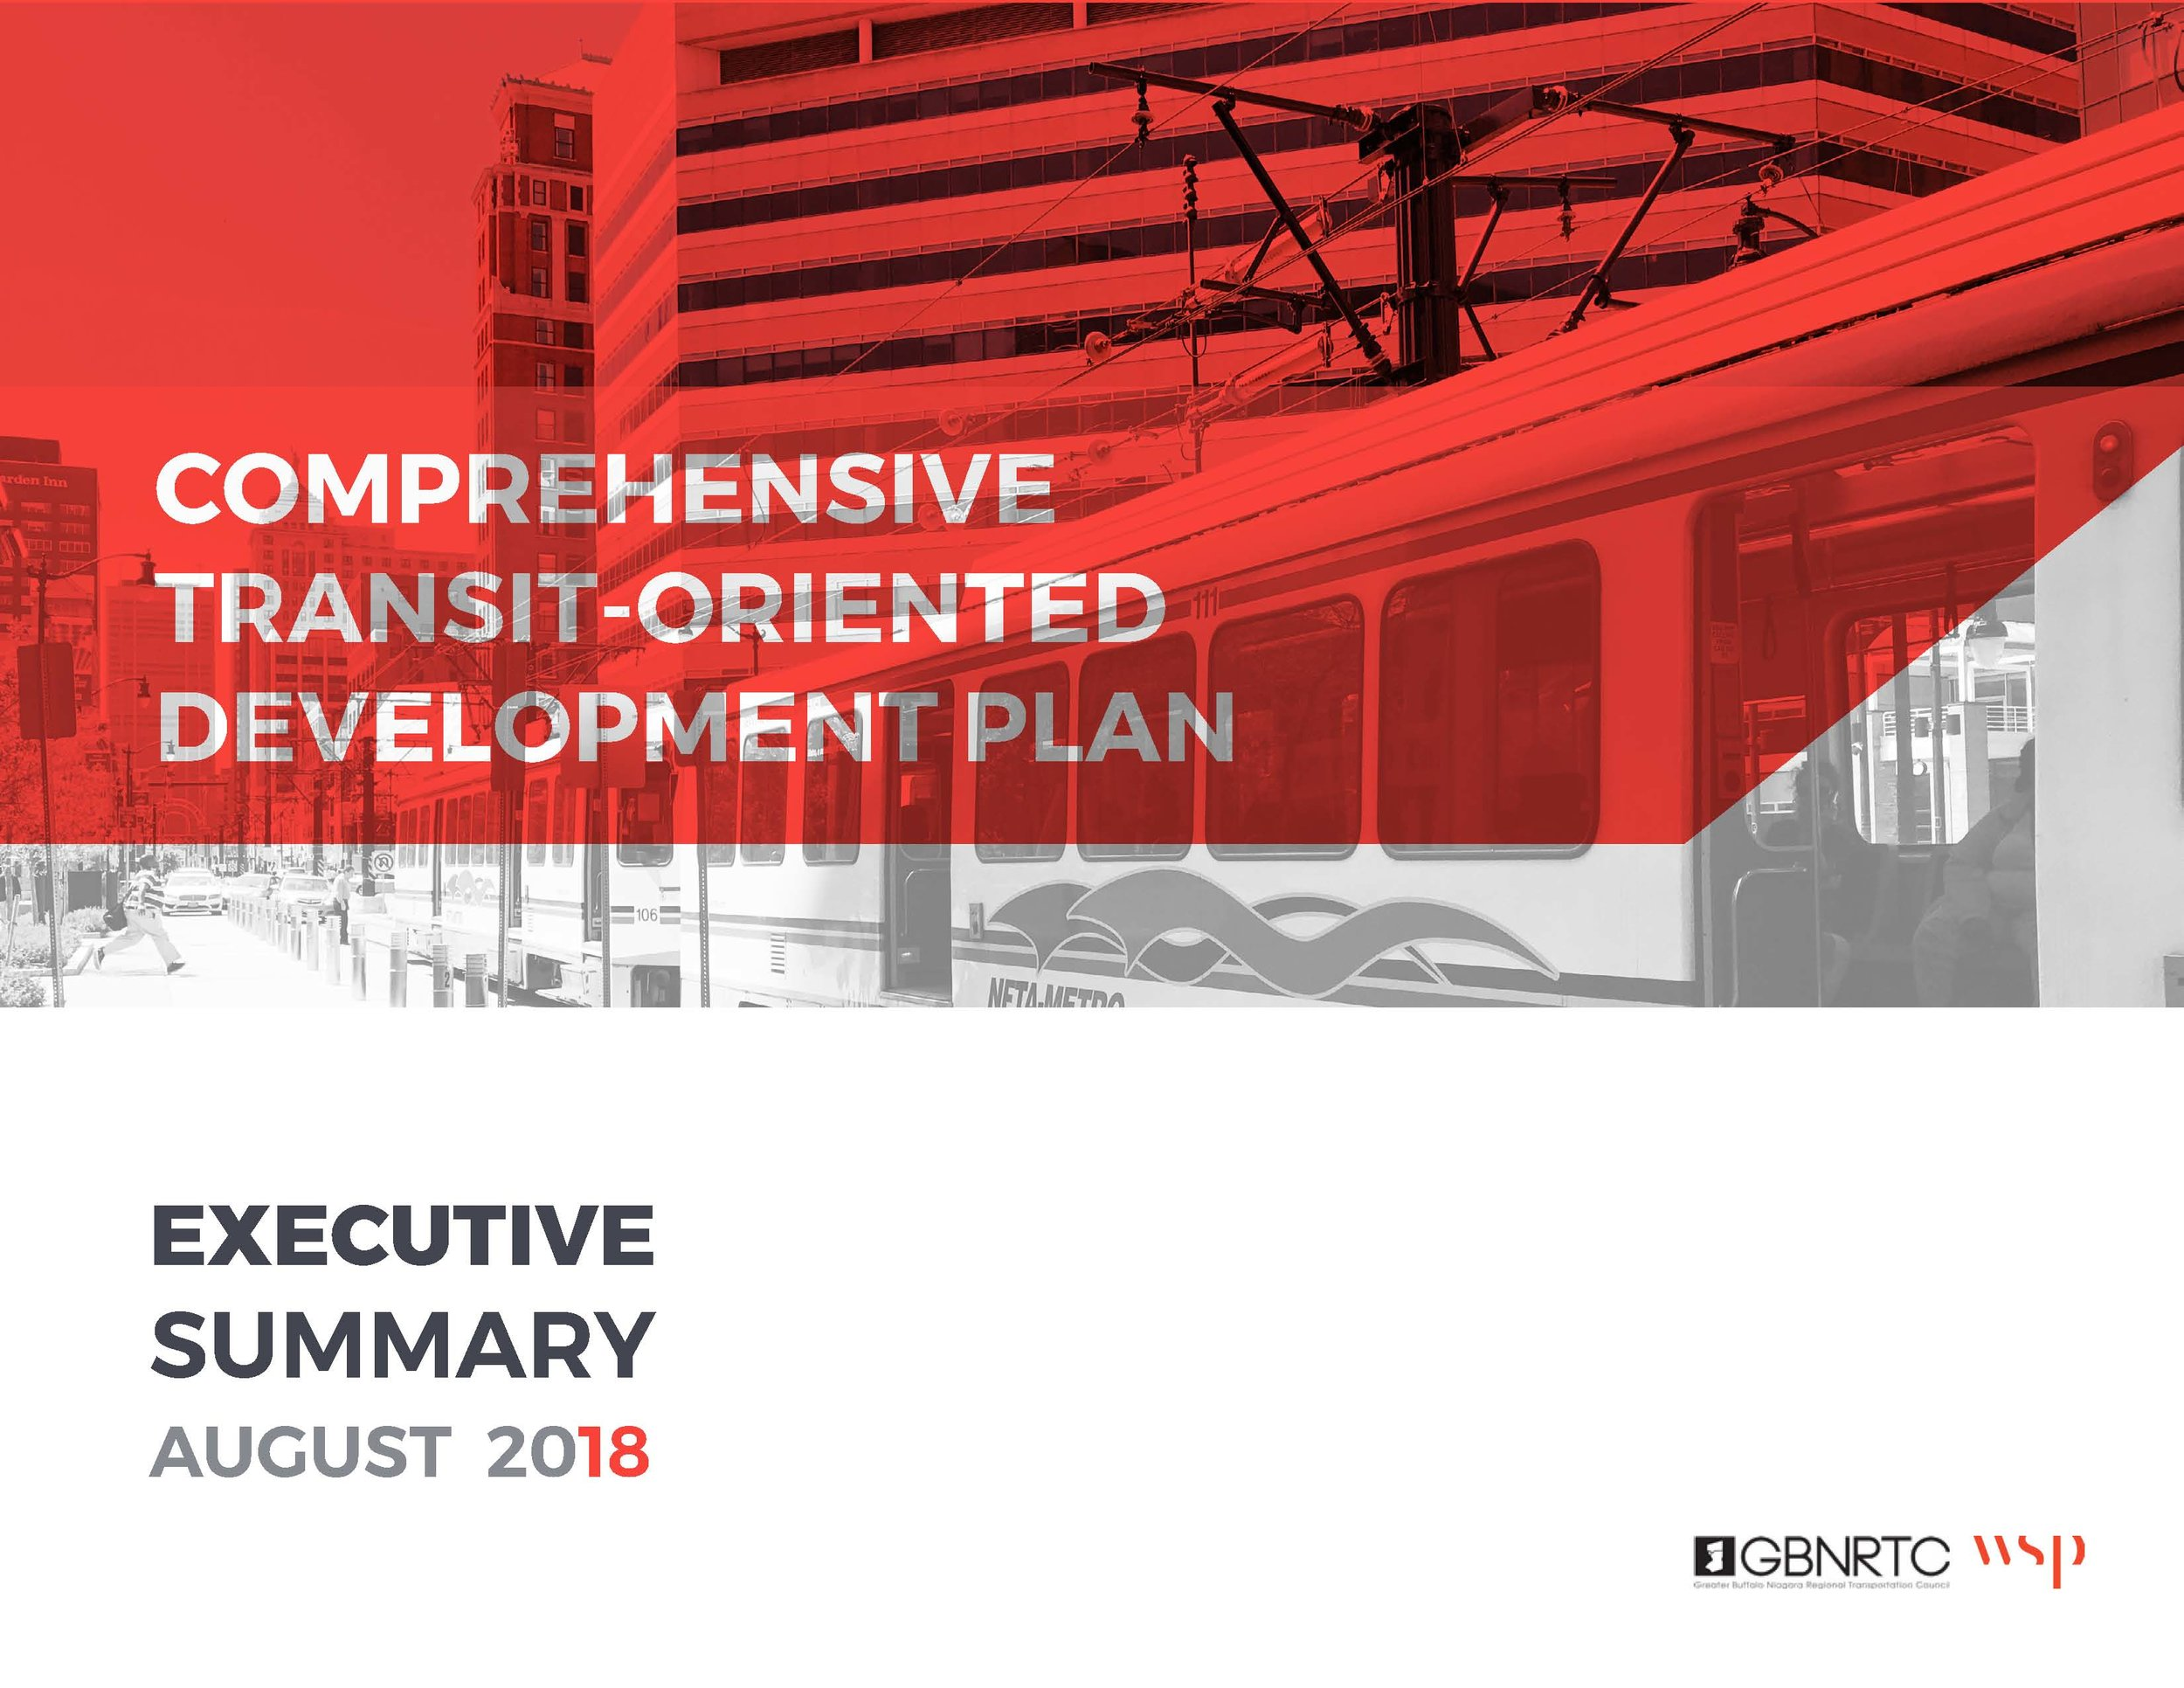 Comprehensive Transit-Oriented Development Plan - Executive Summary 2018